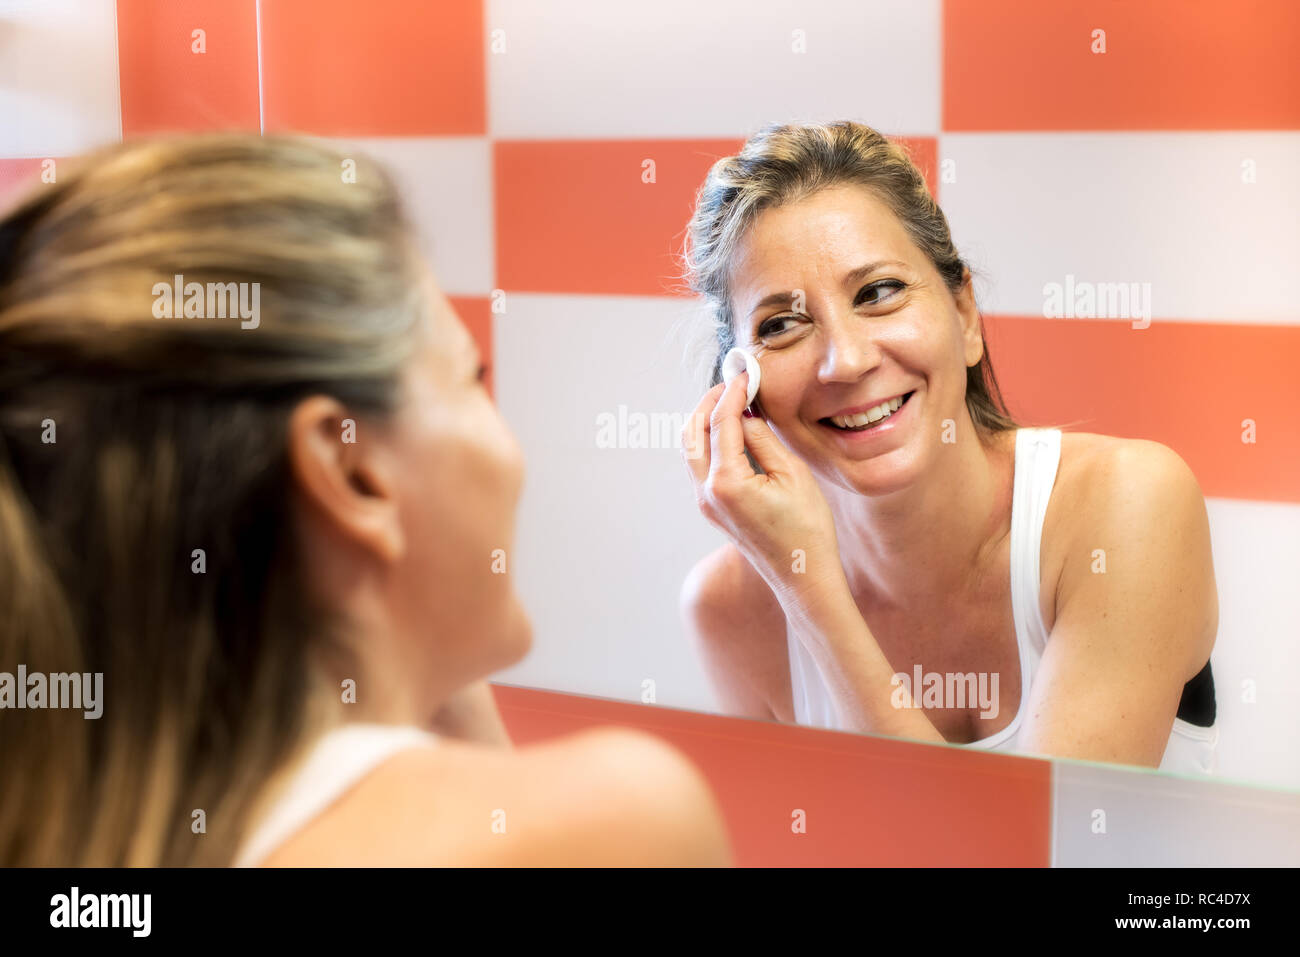 Smiling mature blond woman in white singlet removing makeup with cotton pad, looking at her reflection in the mirror and laughing. Bust portrait of re - Stock Image